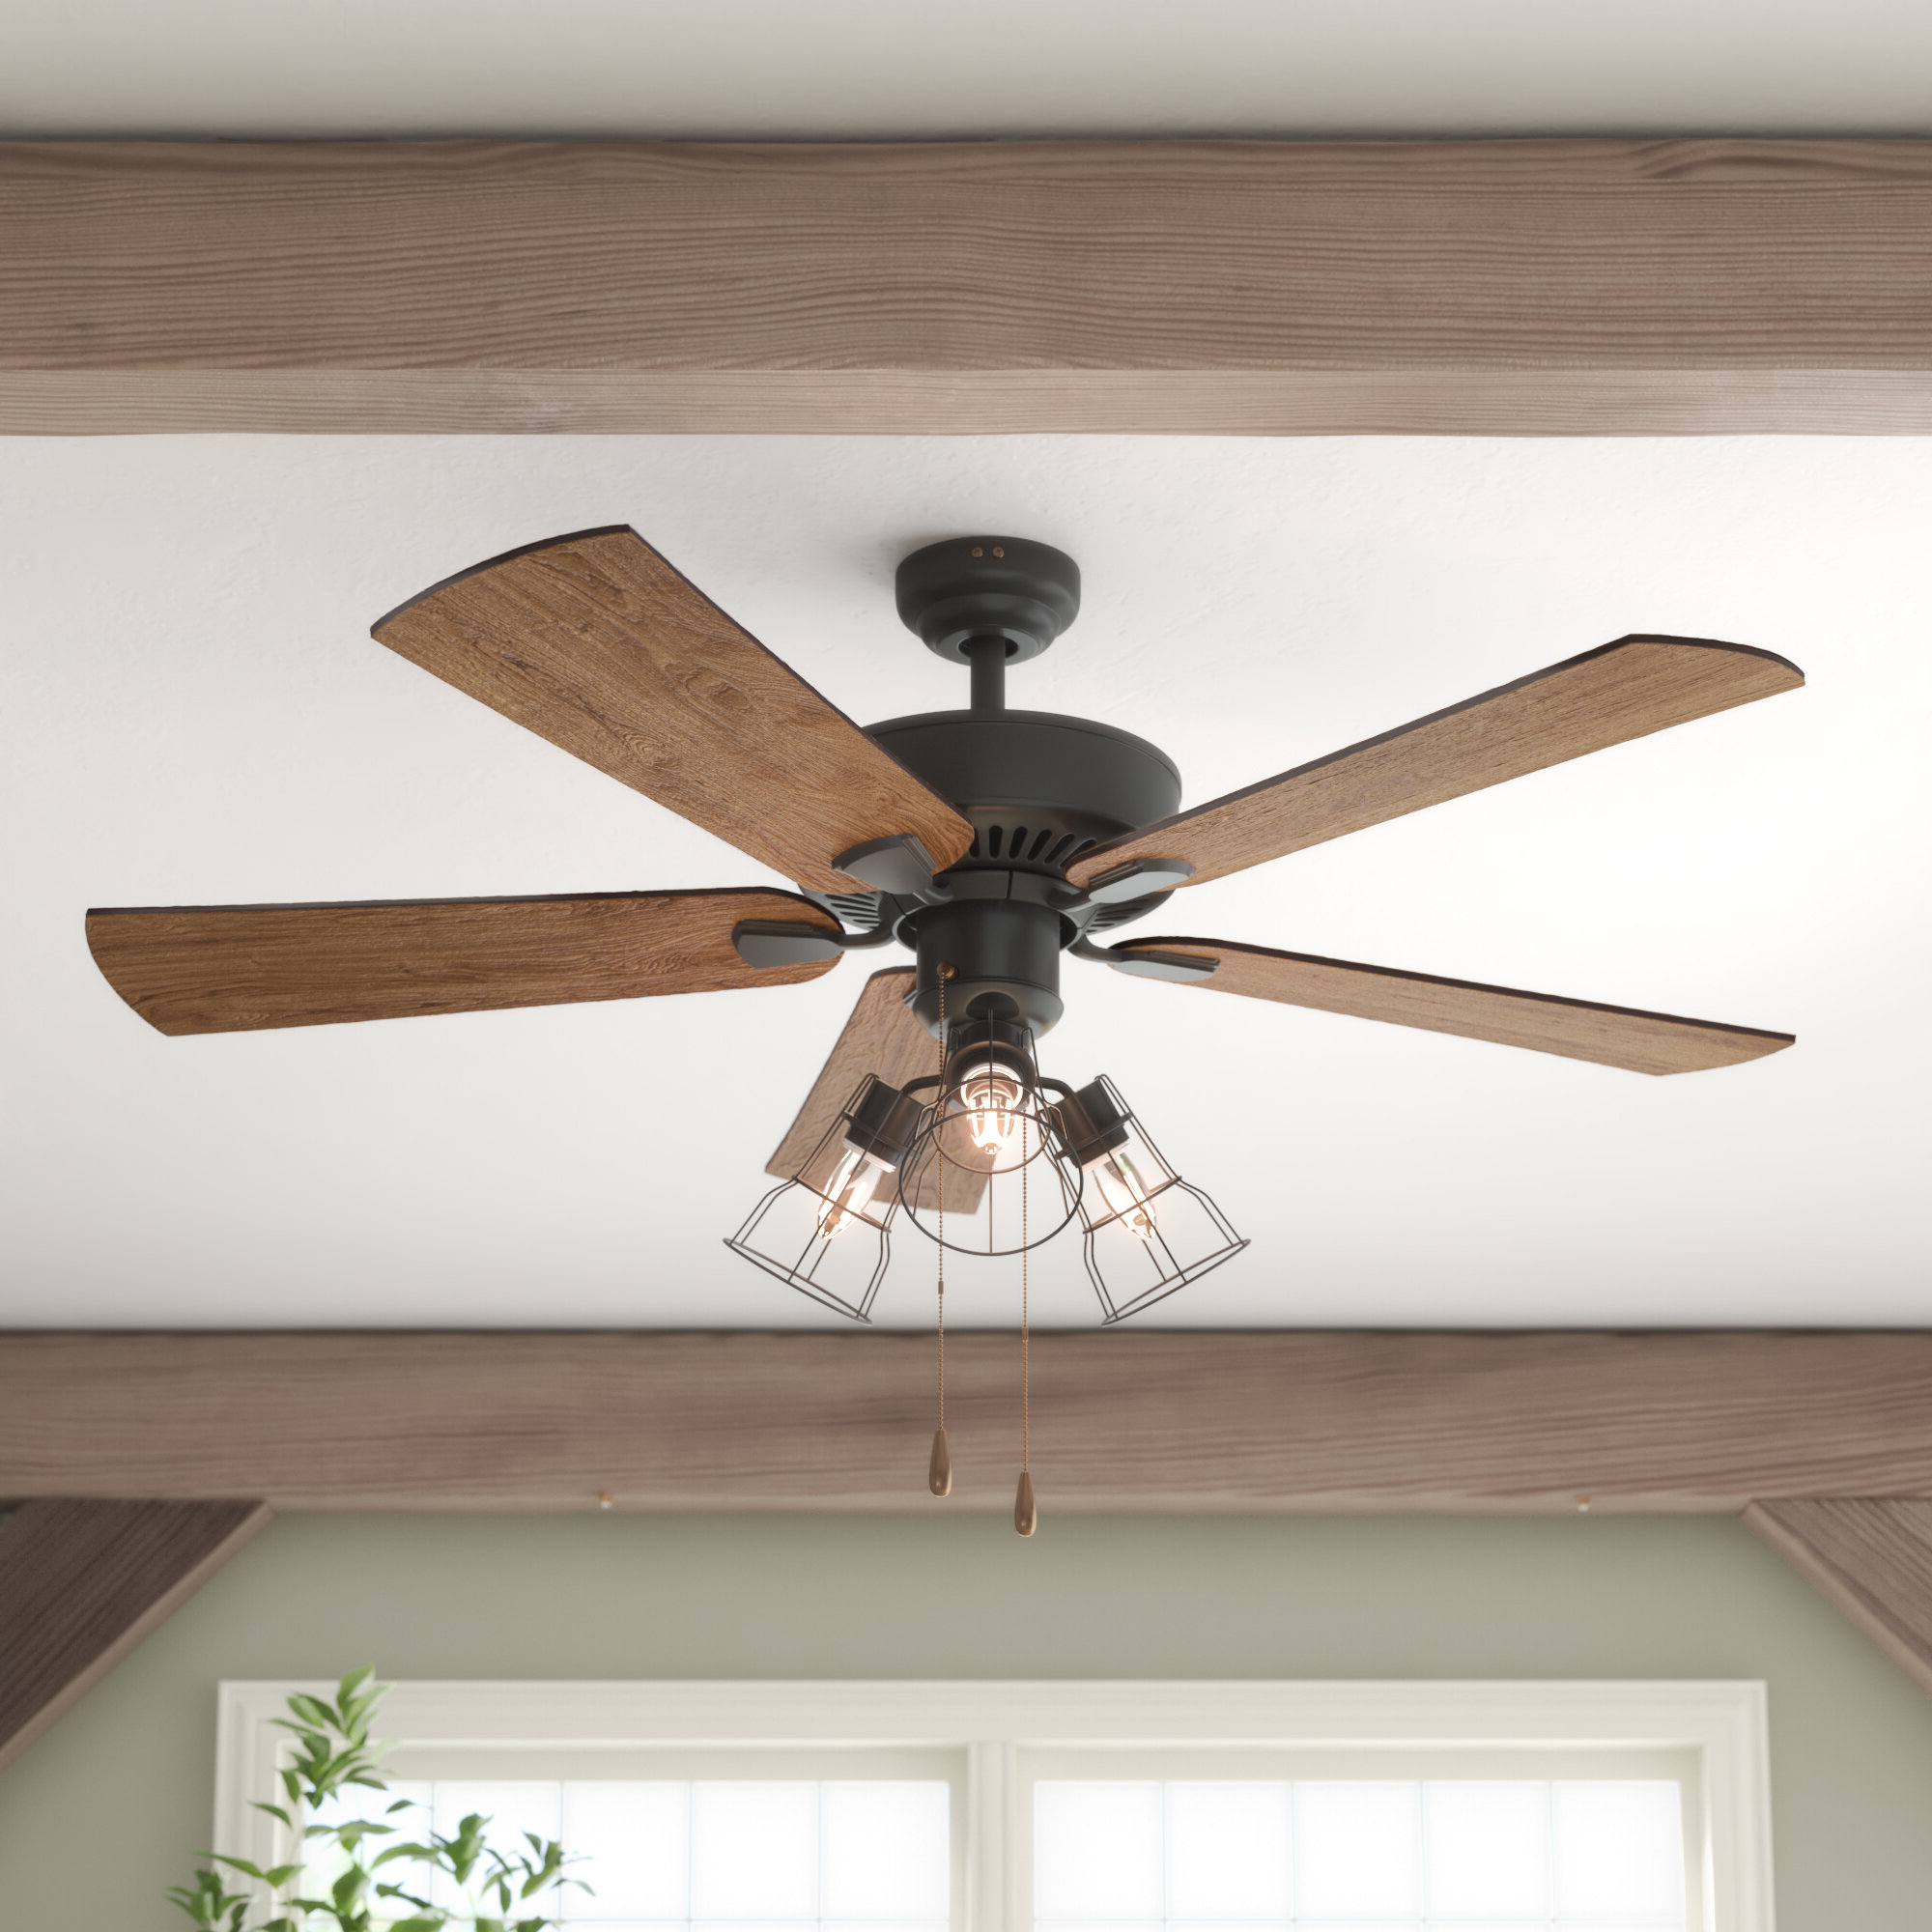 "Most Recent 52"" Socorro 5 Blade Led Ceiling Fan, Light Kit Included With Regard To Ratcliffe 5 Blade Led Ceiling Fans (View 13 of 20)"